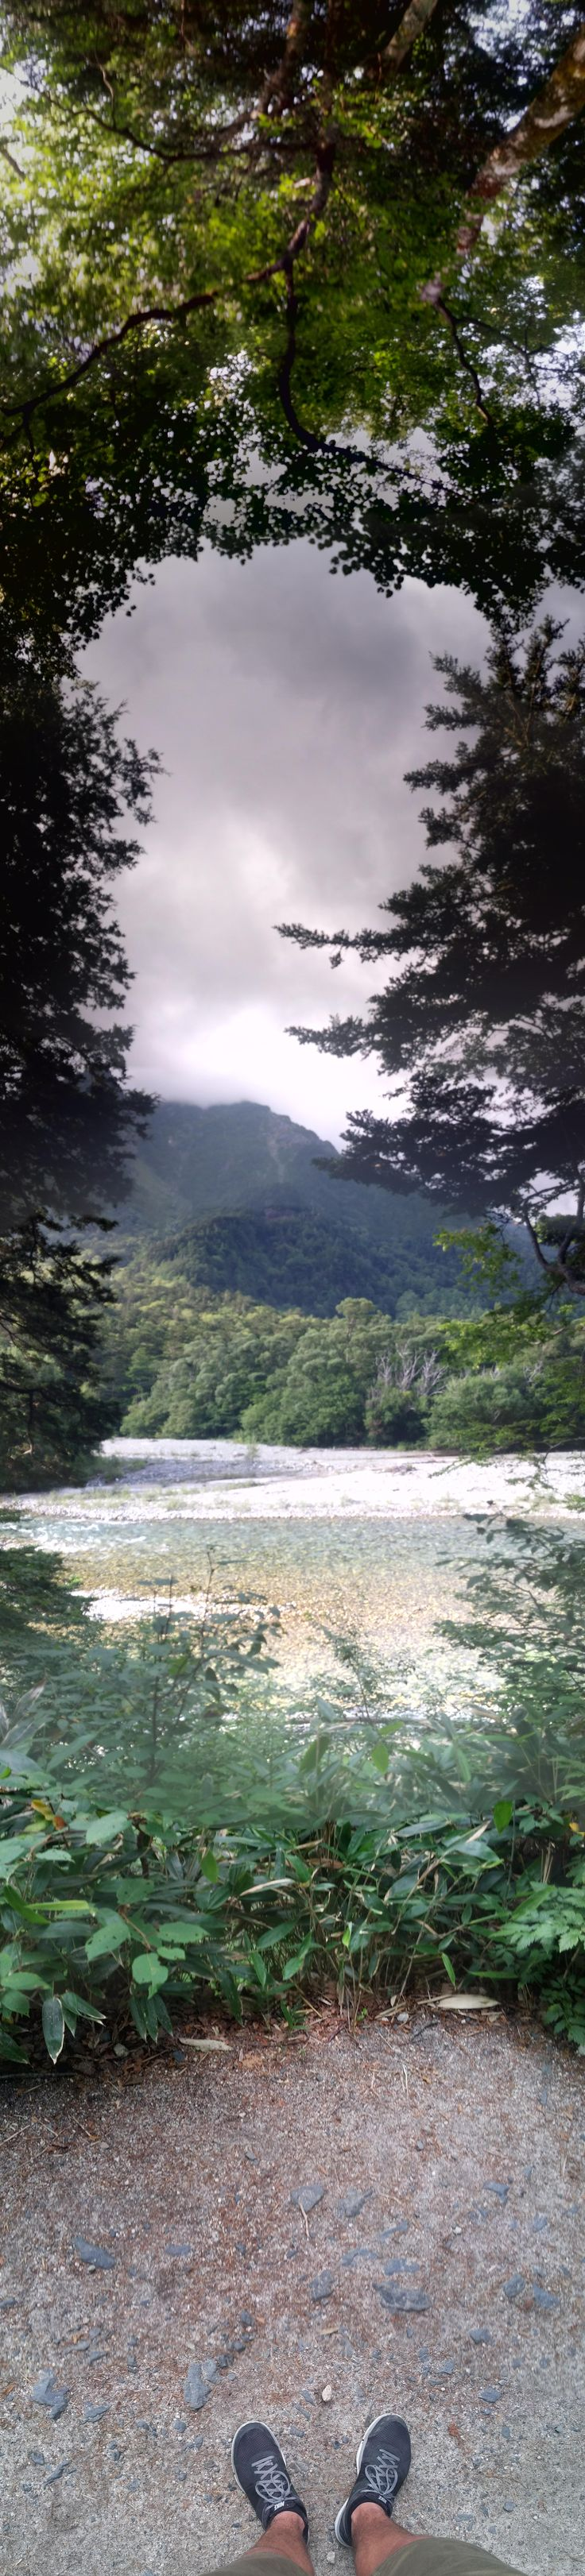 A panorama pic I took hiking in Kamikochi Japan #hiking #camping #outdoors #nature #travel #backpacking #adventure #marmot #outdoor #mountains #photography